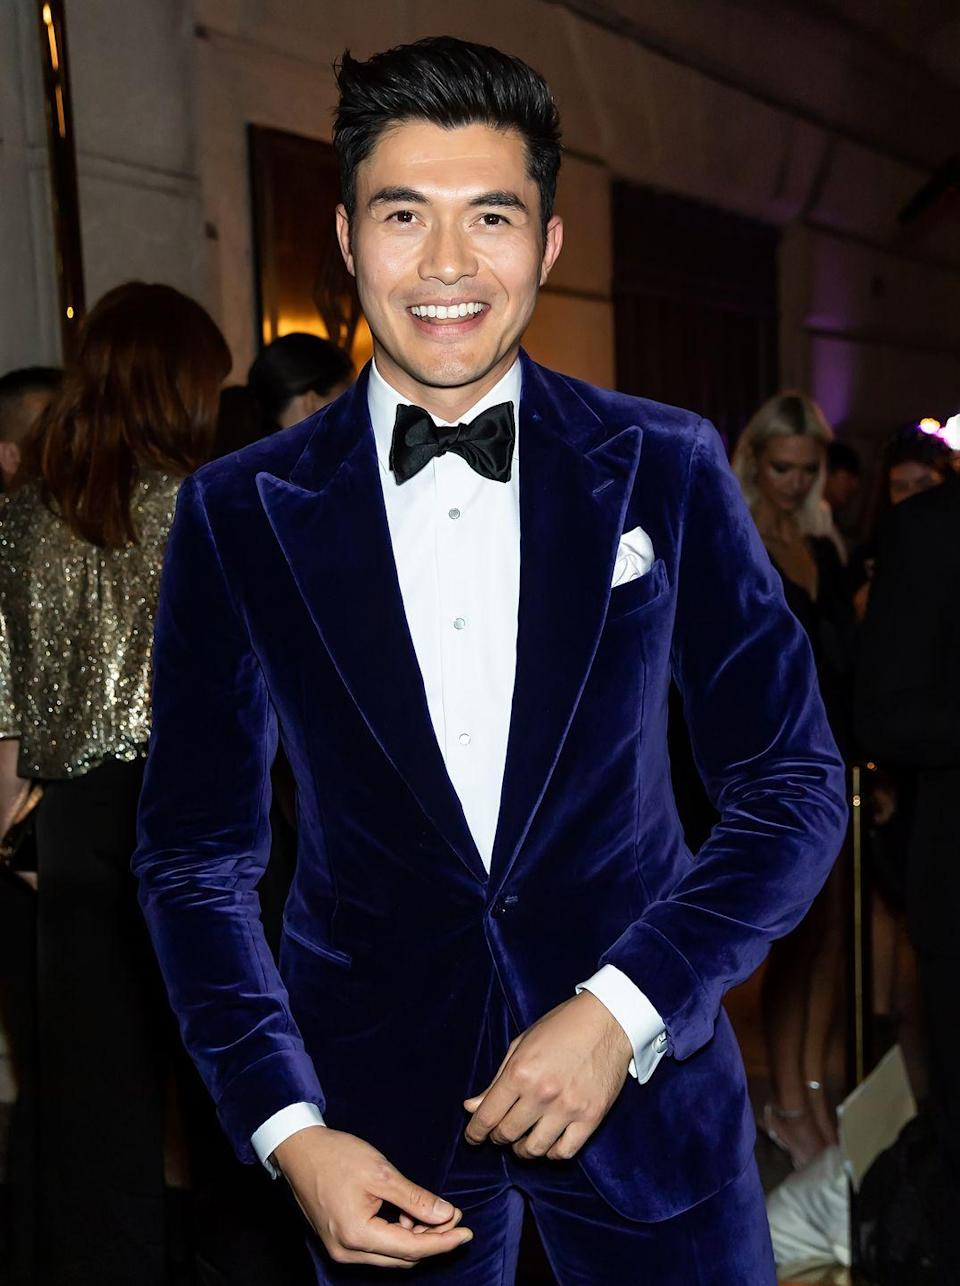 <p>Golding is a leading man on the rise. While the 2010s cast him in generally 'handsome guy' roles like Crazy Rich Asians and A Simple Favor, Golding has recently upped his action game in The Gentlemen and Snake Eyes. He oozes suaveness, and has the potential to be an action movie mainstay in the next few years. What better way to build out his legacy than with the iconic Bond mantle? —MP</p>